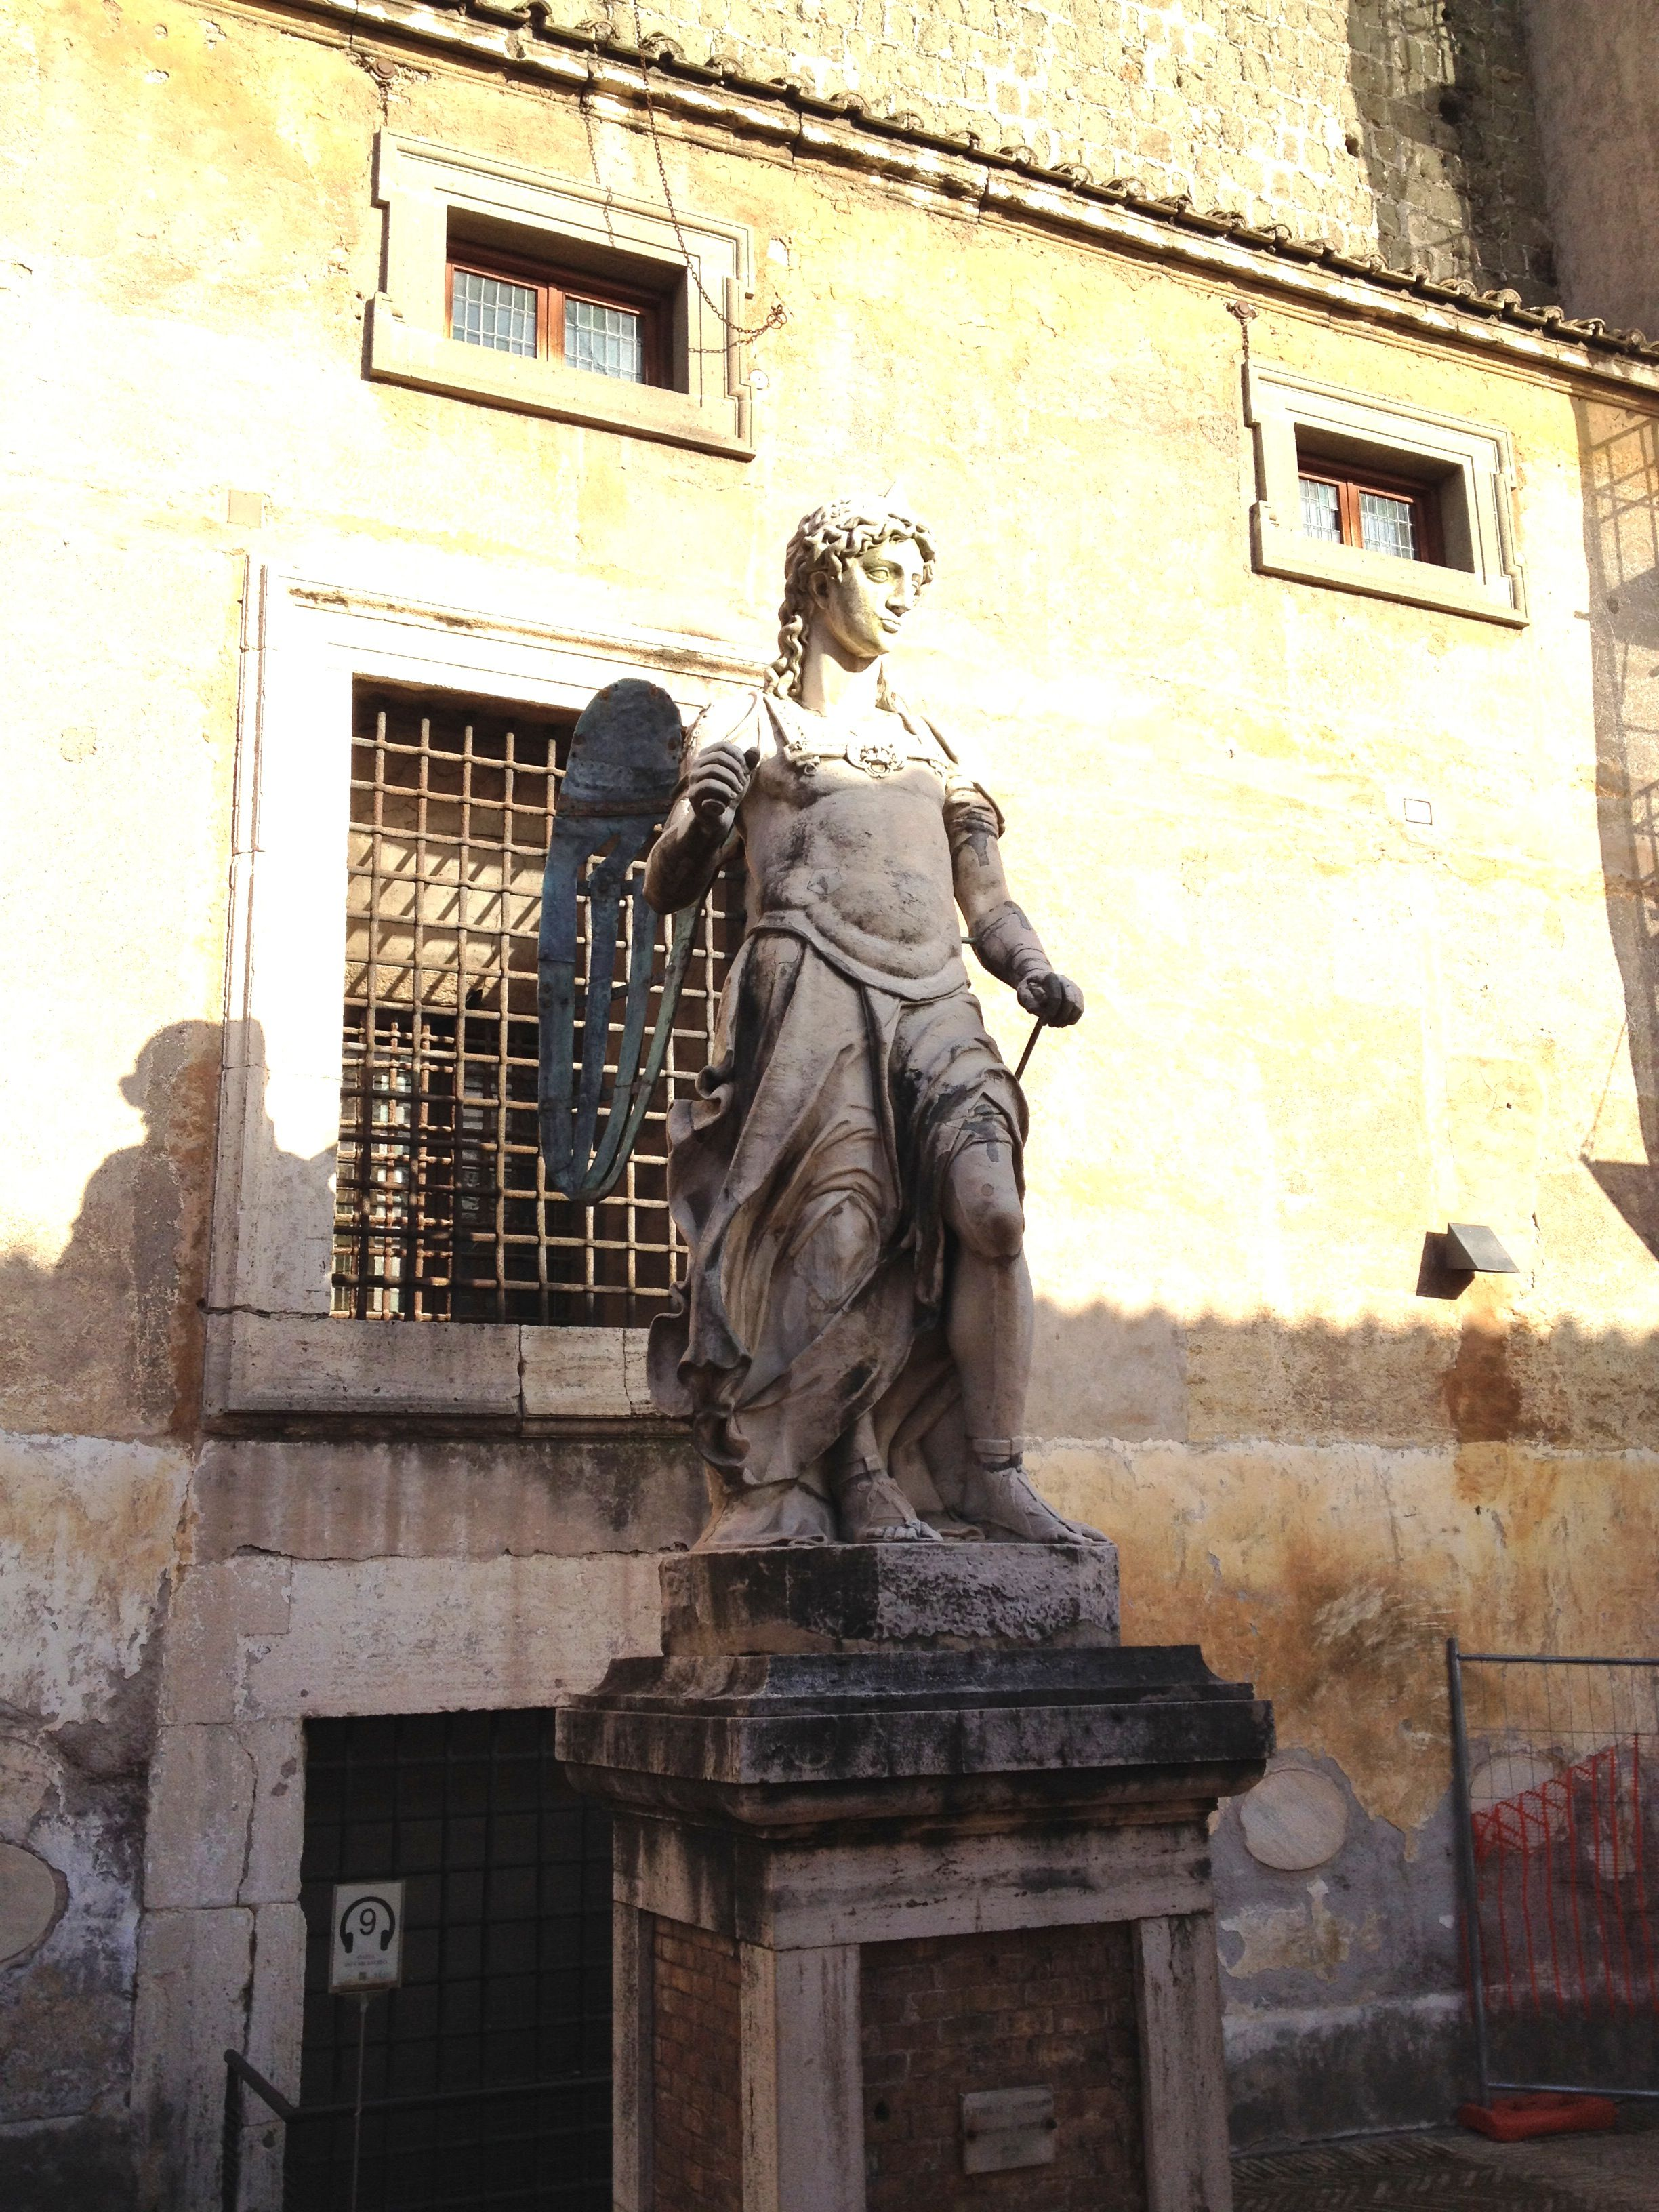 One of the two statutes of the Archangel Michael in Castel Sant'Angelo.